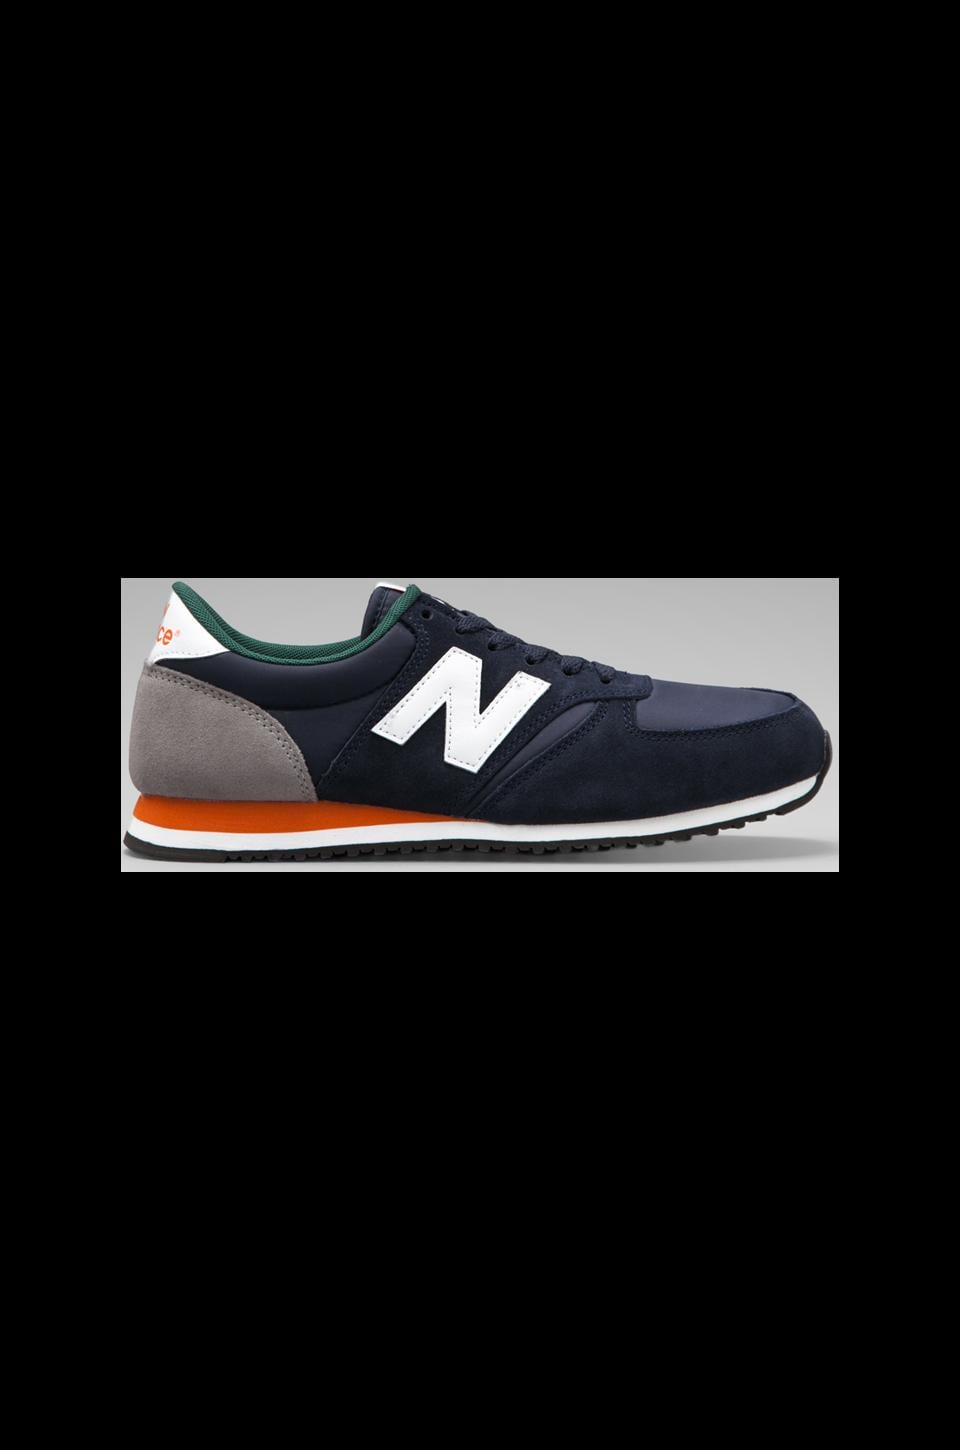 New Balance U420 in Navy